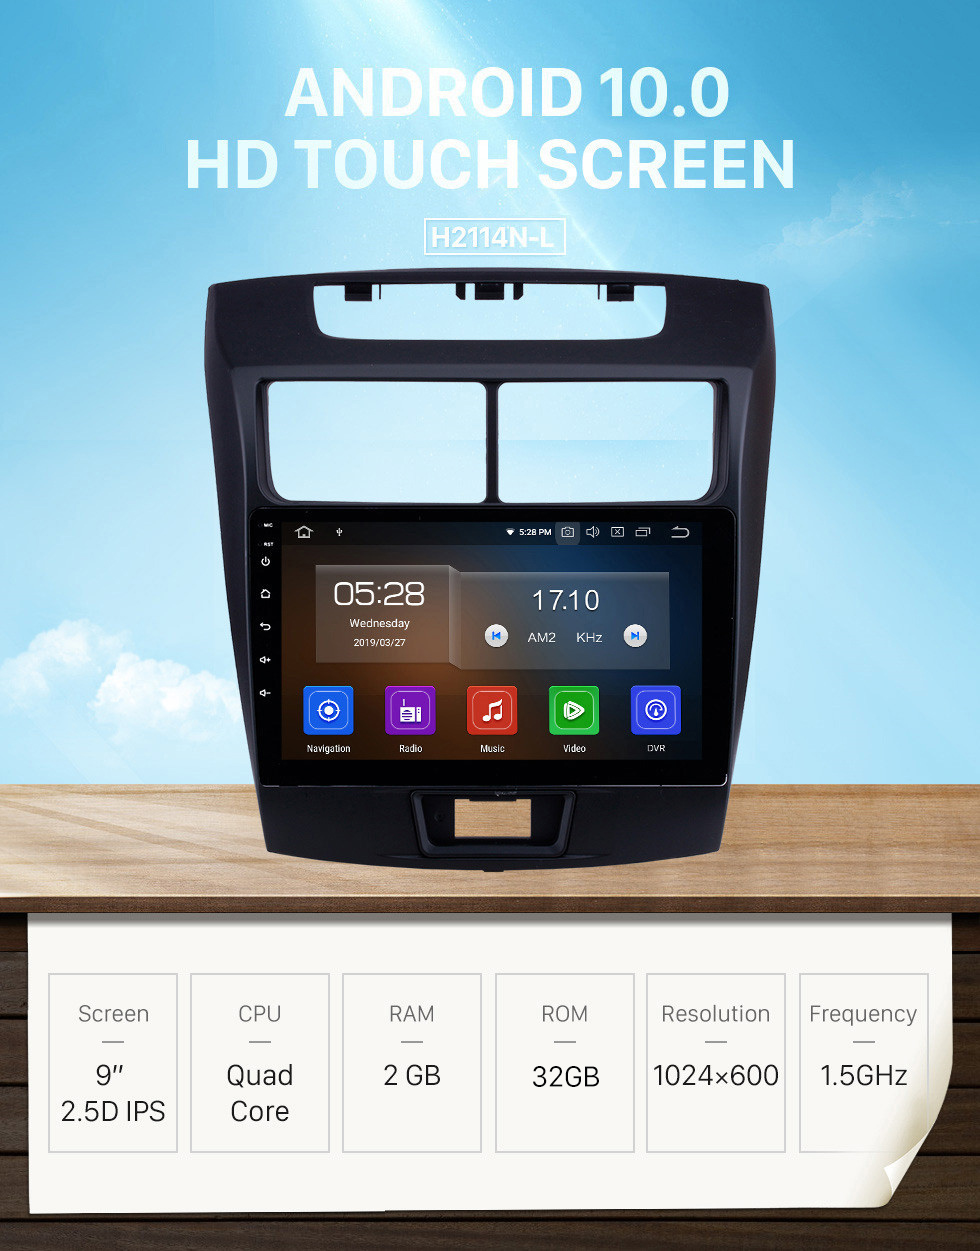 Seicane Android 10.0 2010 2011 2012-2016 Toyota Avanza Car Radio 9 inch HD Touchscreen GPS Navigation with WIFI Bluetooth music 1080P Video USB support Carplay DVR TPMS DVD